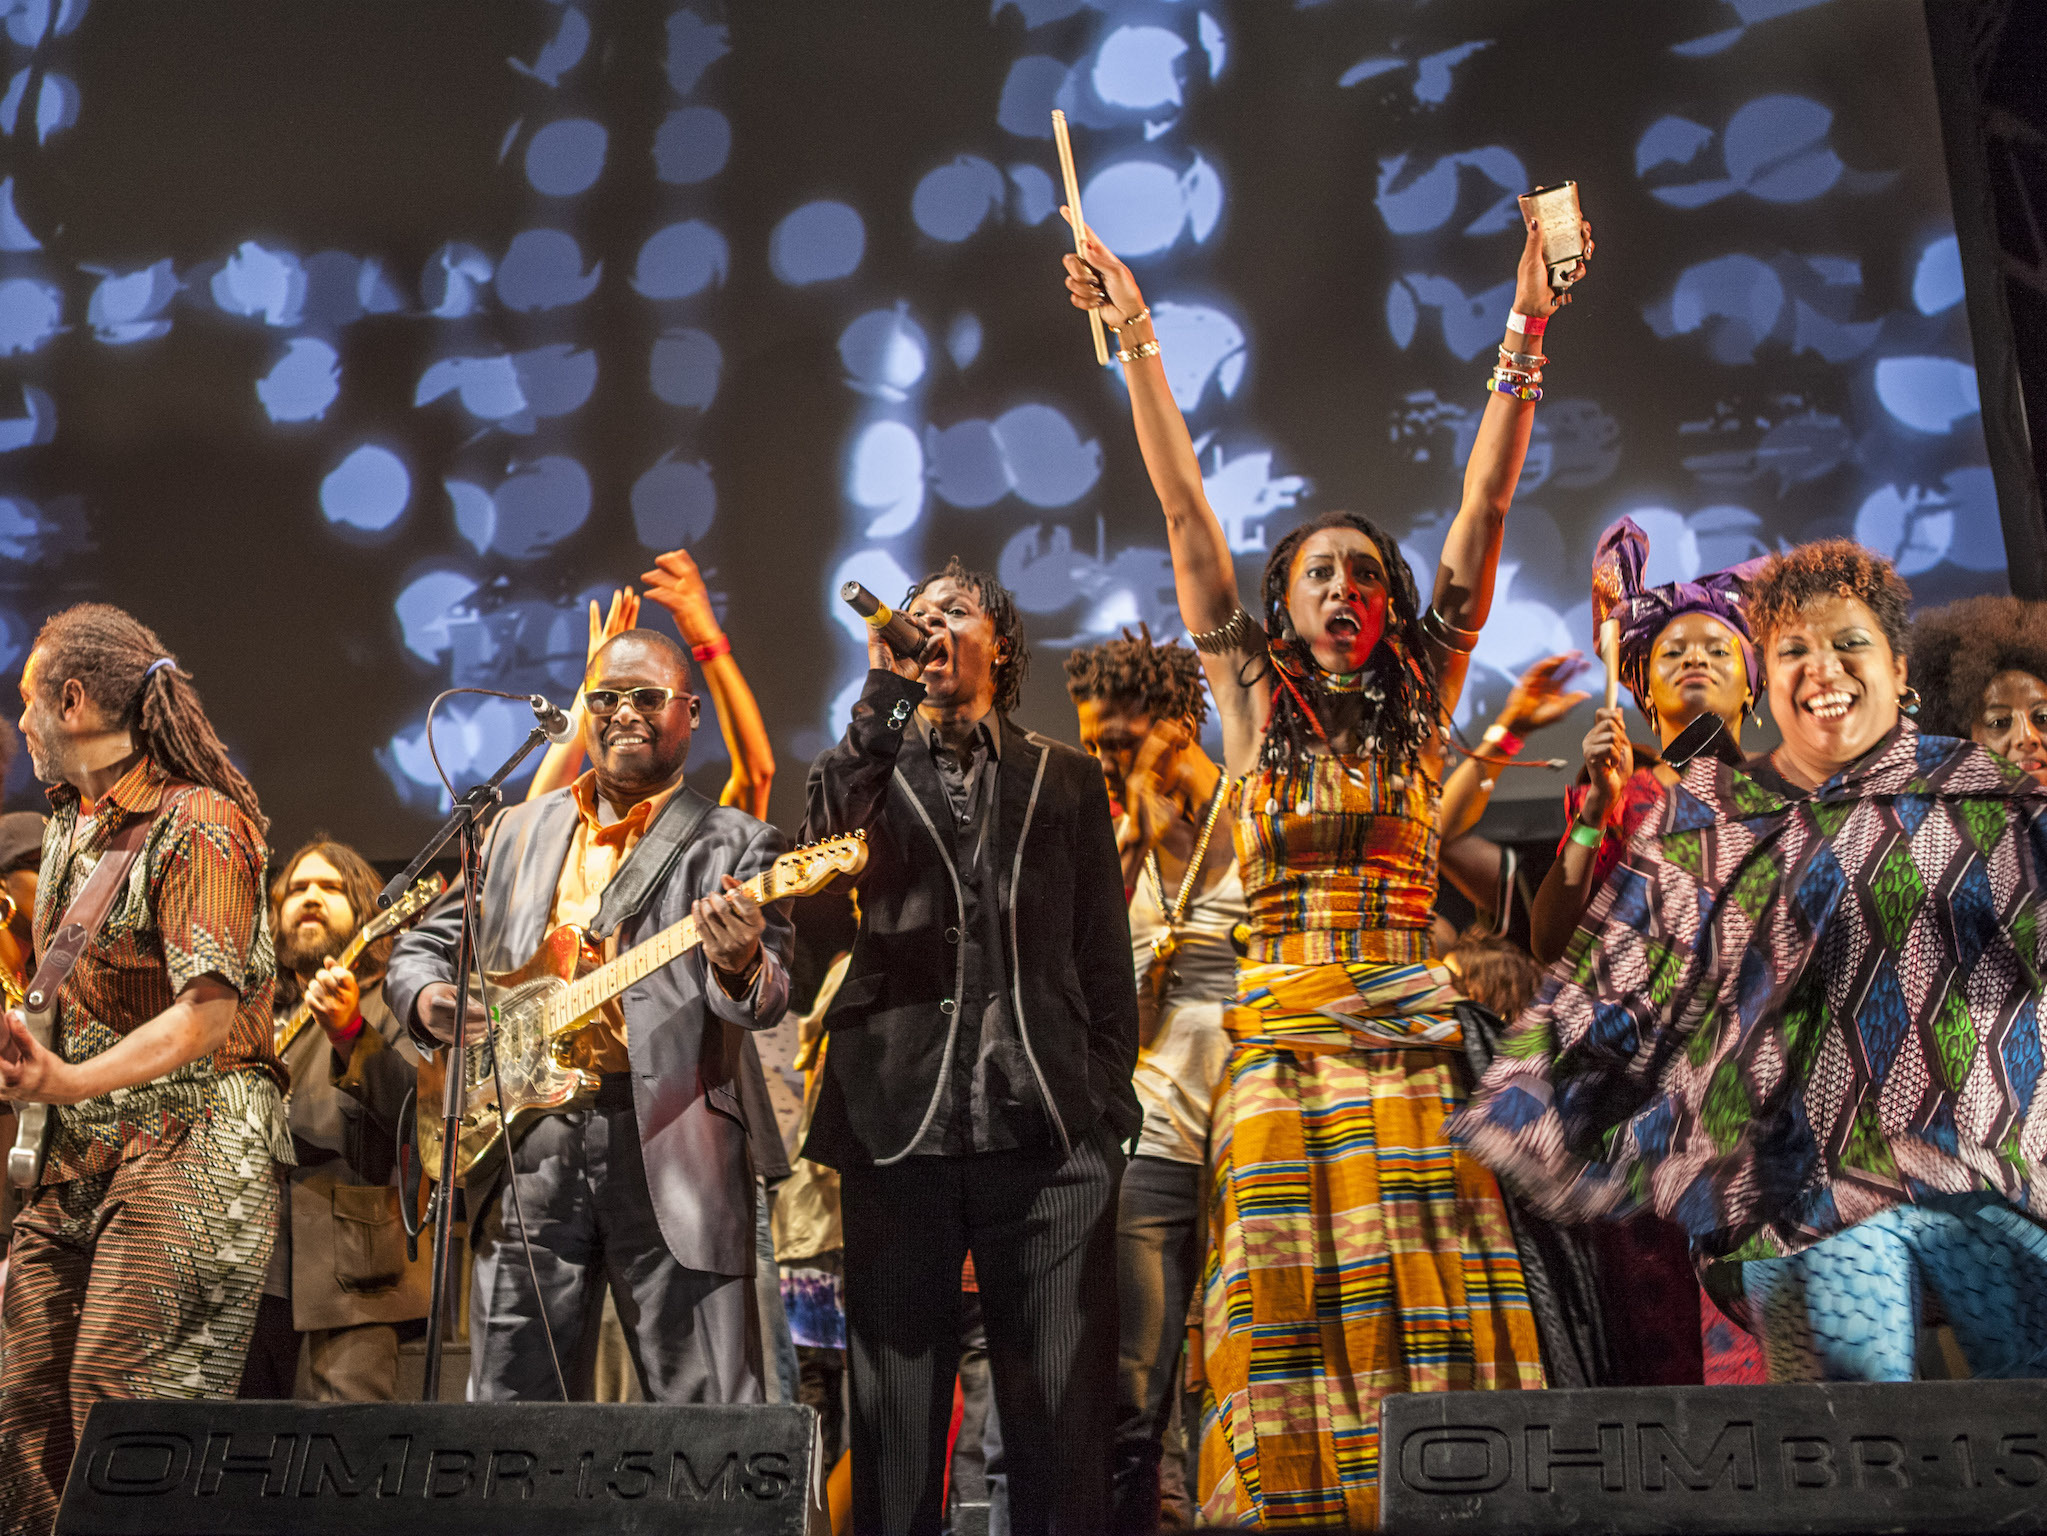 Africa Express at London Borough of Culture